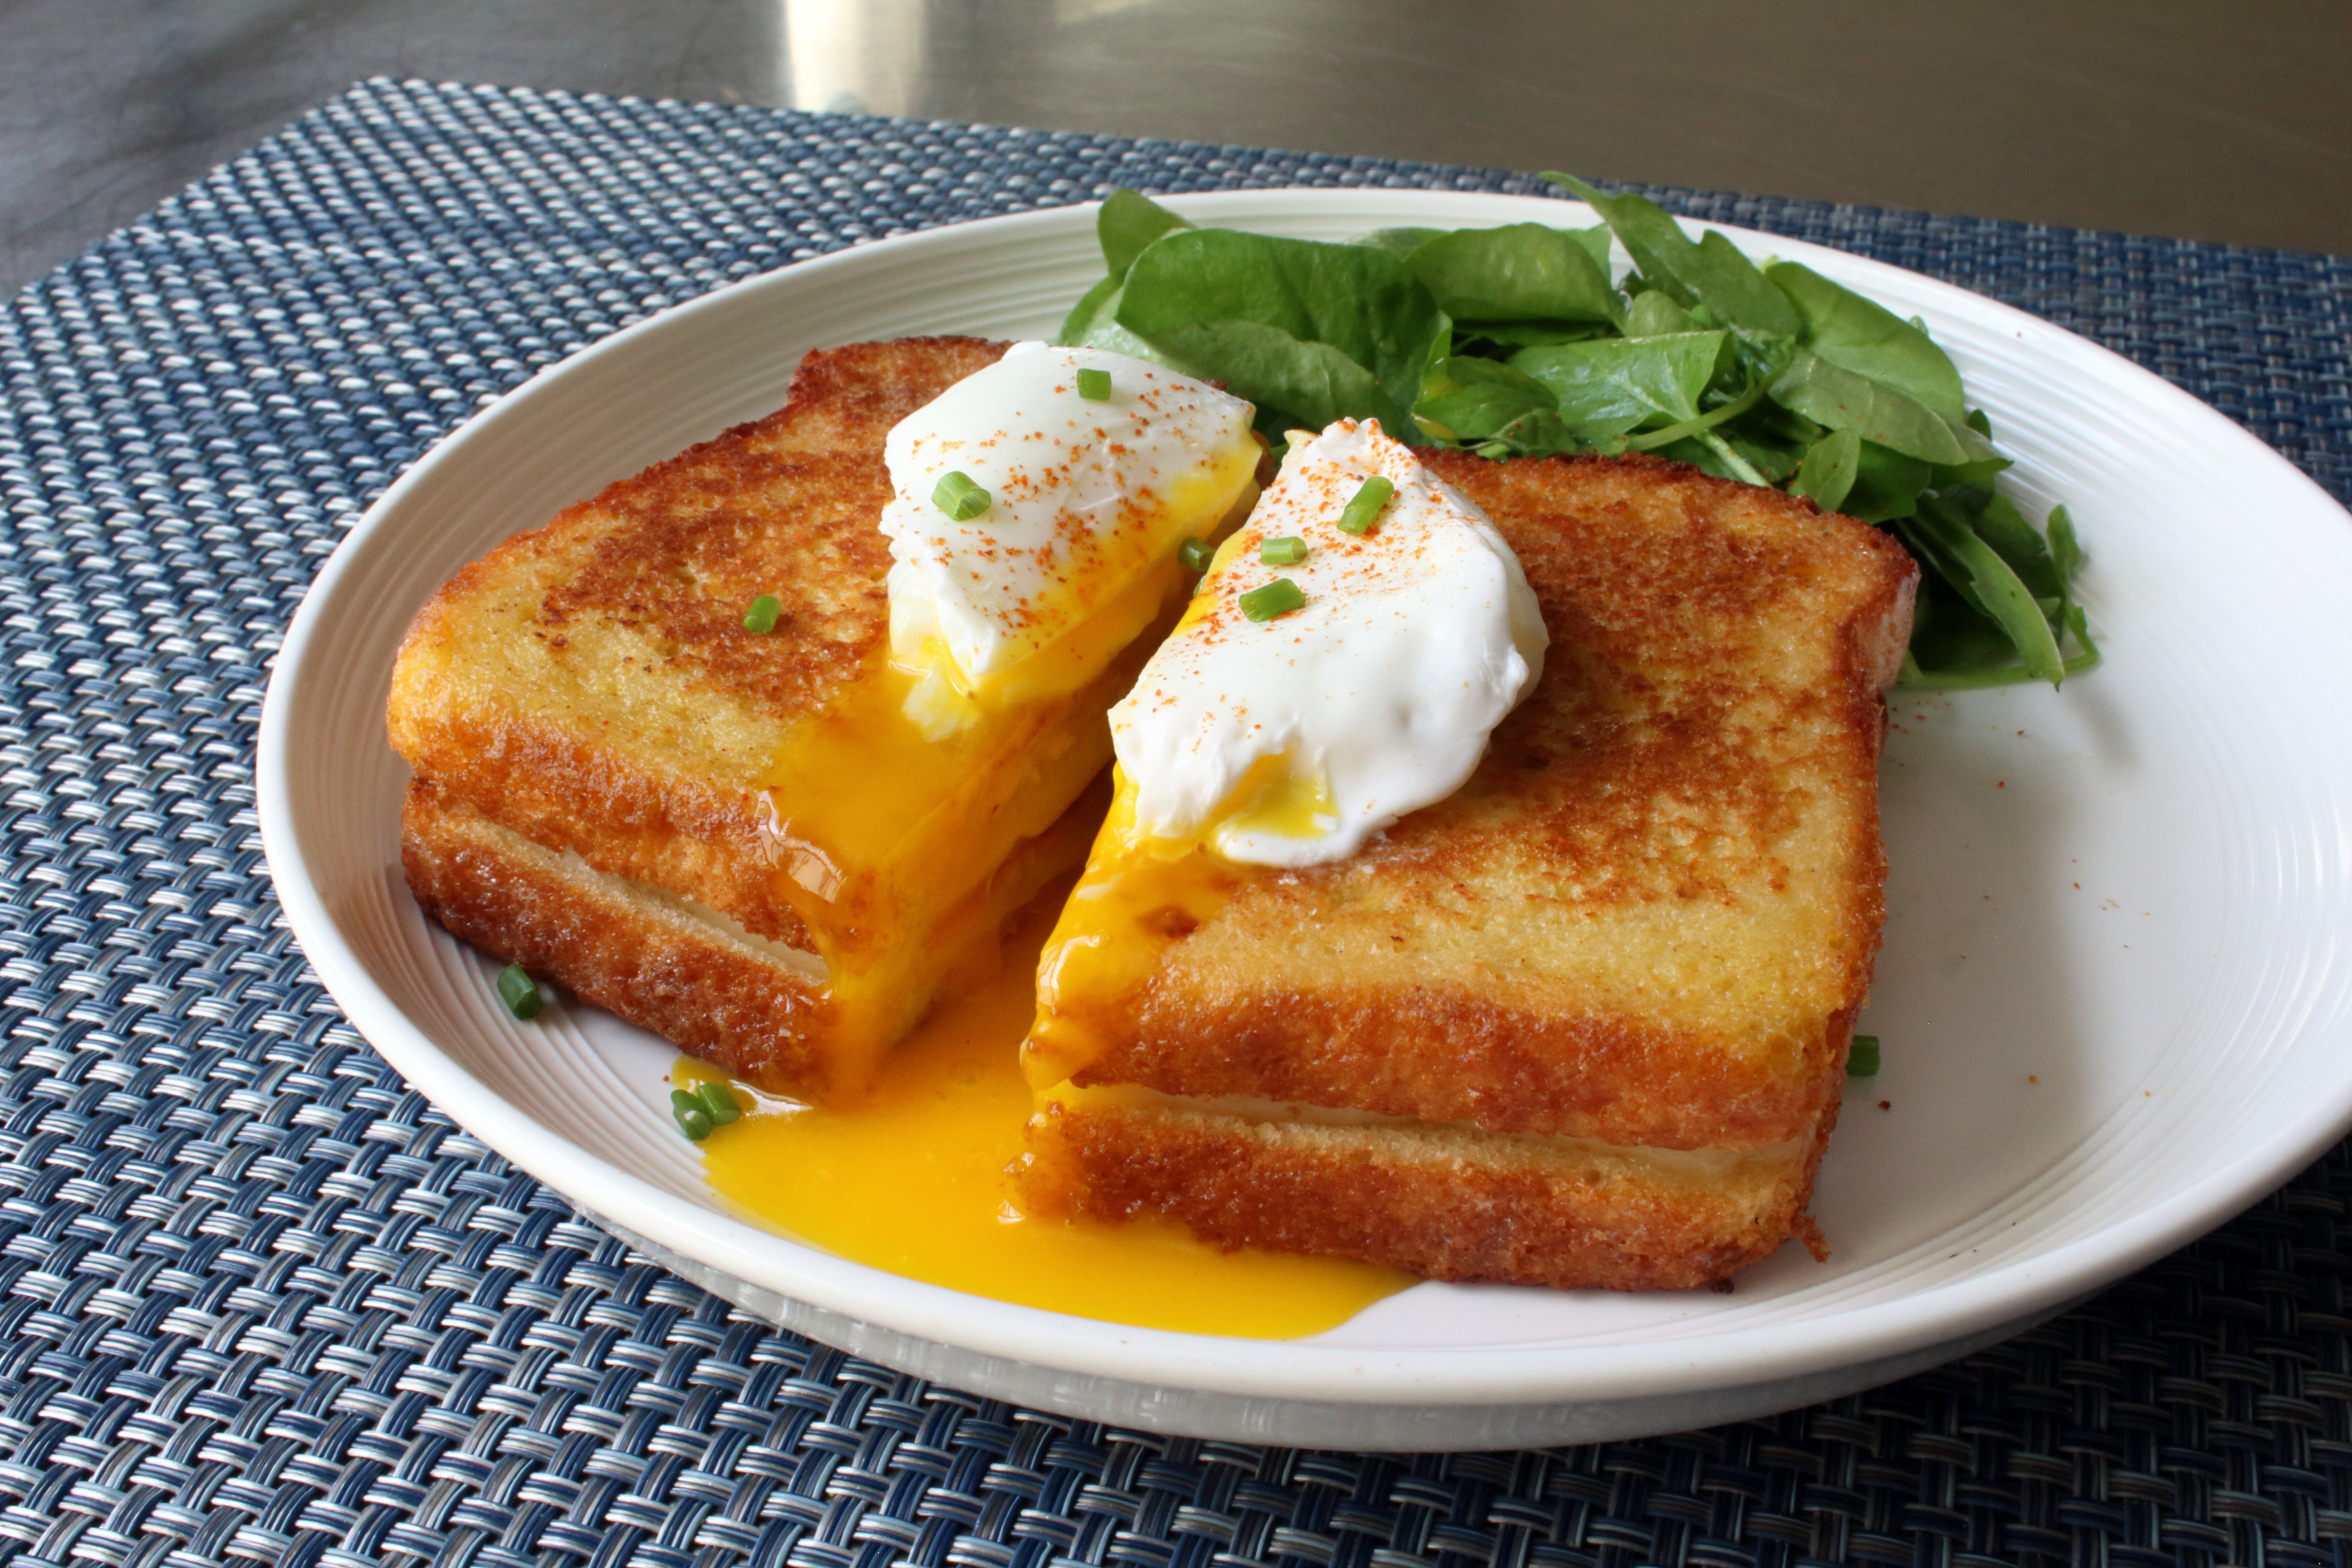 Madame Cristo - Grilled Ham and Cheese